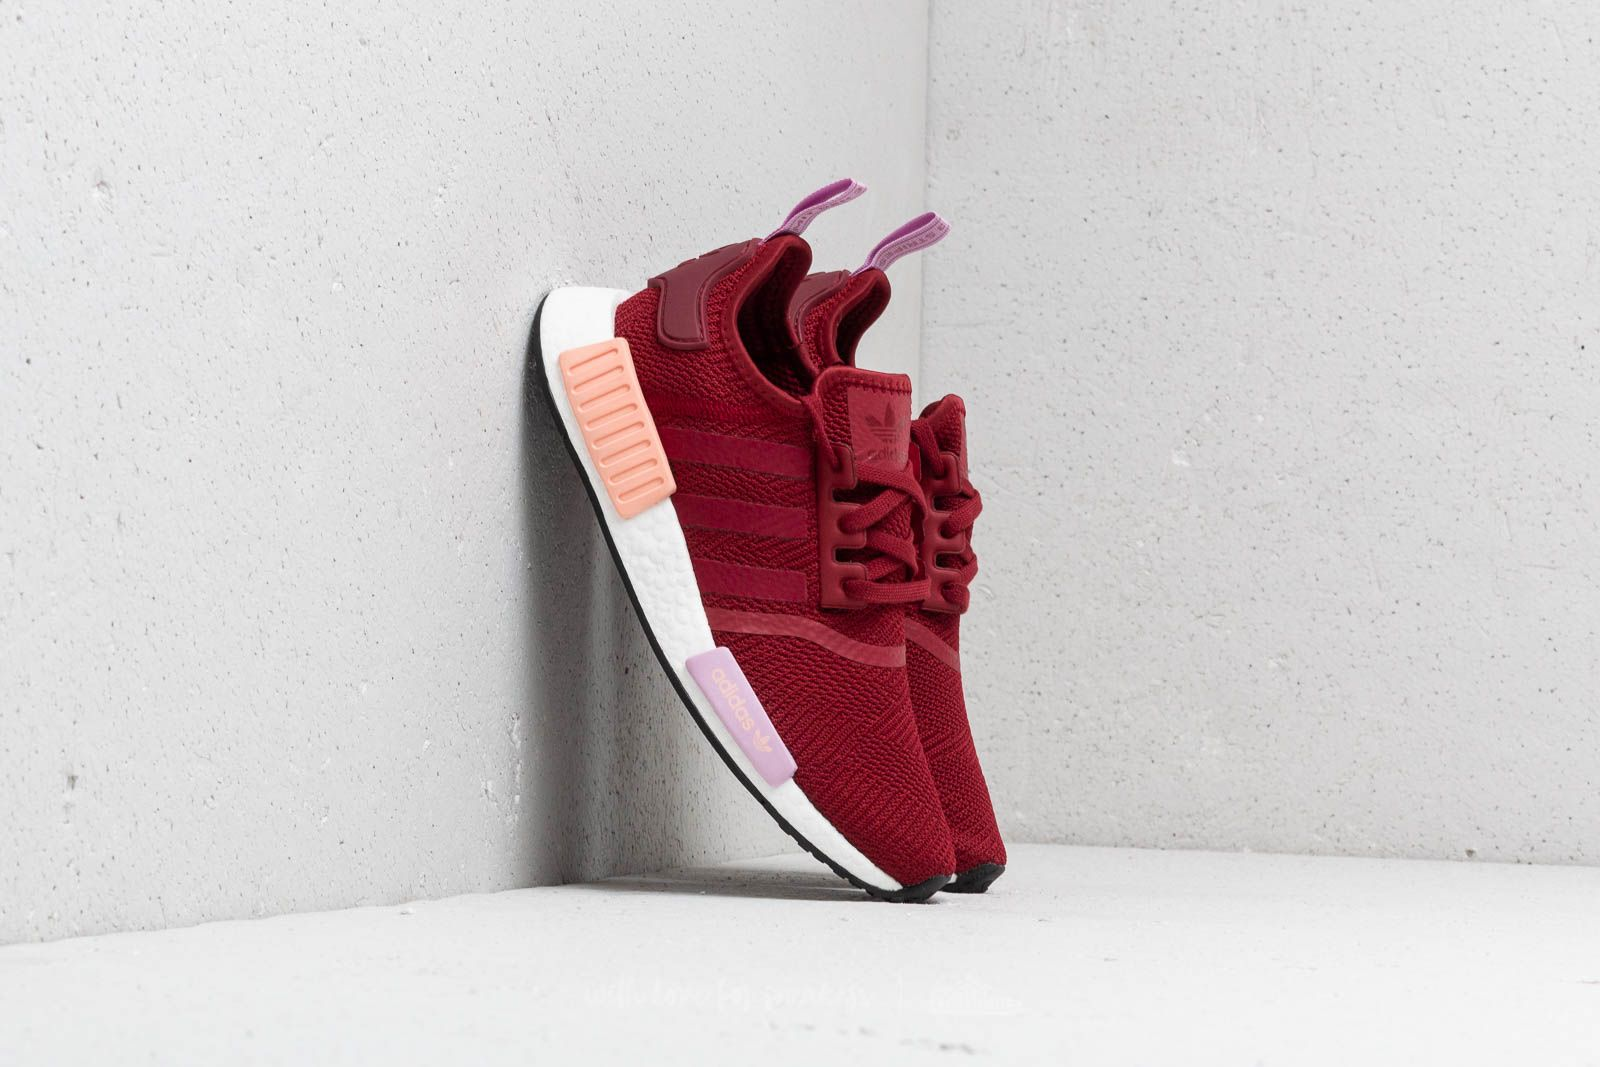 c403d6c926054 adidas NMD R1 W Collegiate Burgundy  Collegiate Burgundy  Clear Orange at a  great price 139